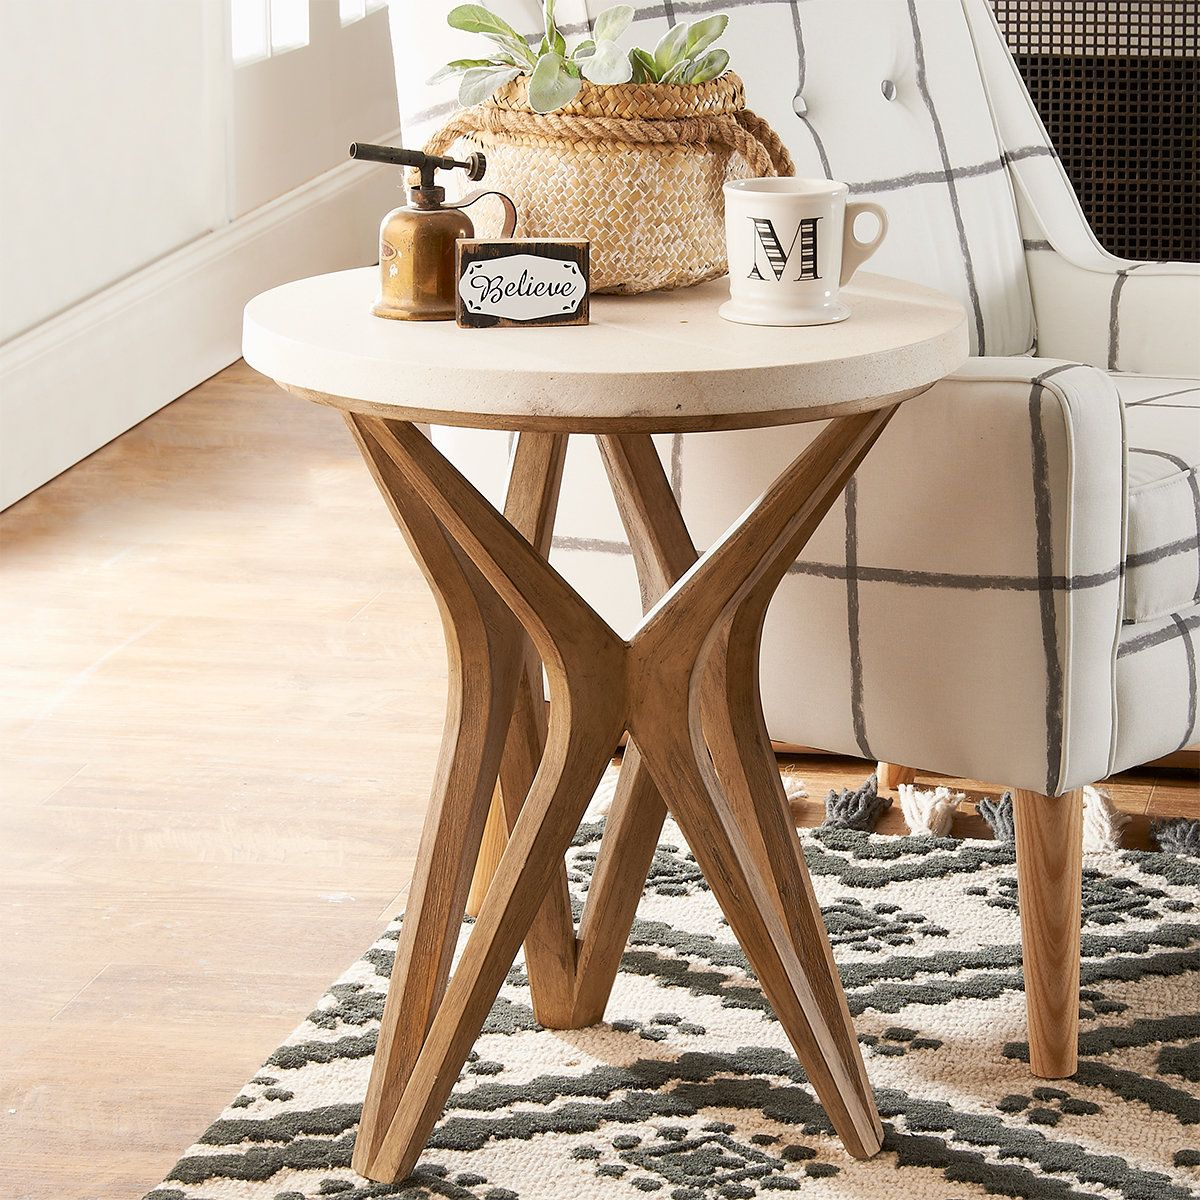 Handcrafted Harmony Side Table In 2020 Table Decor Living Room Living Room Side Table Side Table Decor Living Room #wooden #side #table #living #room